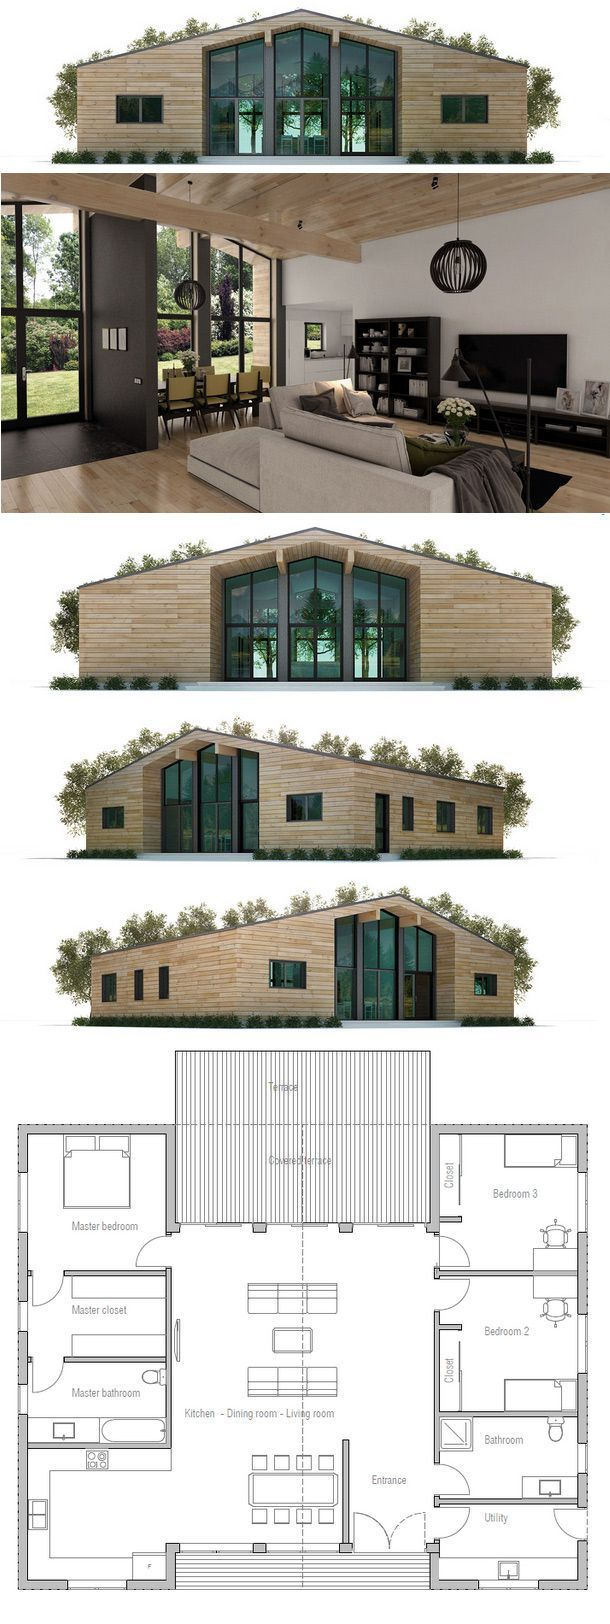 51 best house images on pinterest architecture projects and